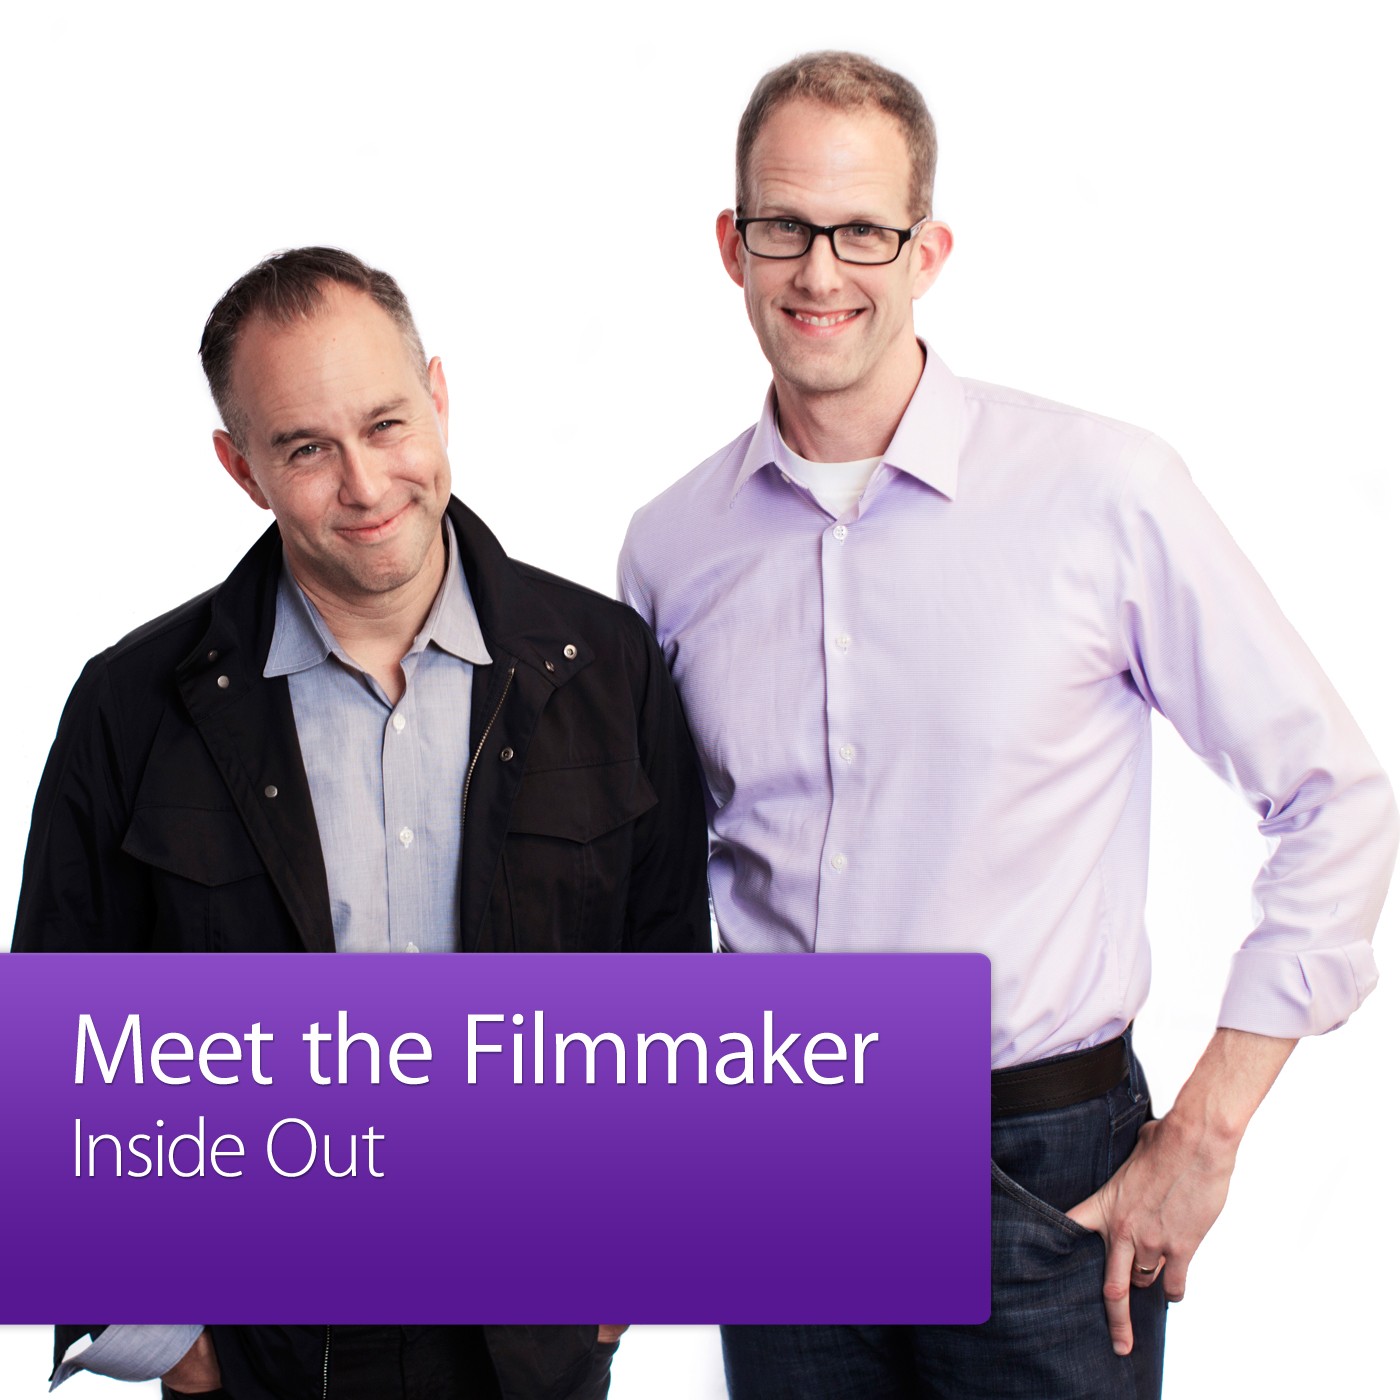 Inside Out: Meet the Filmmaker